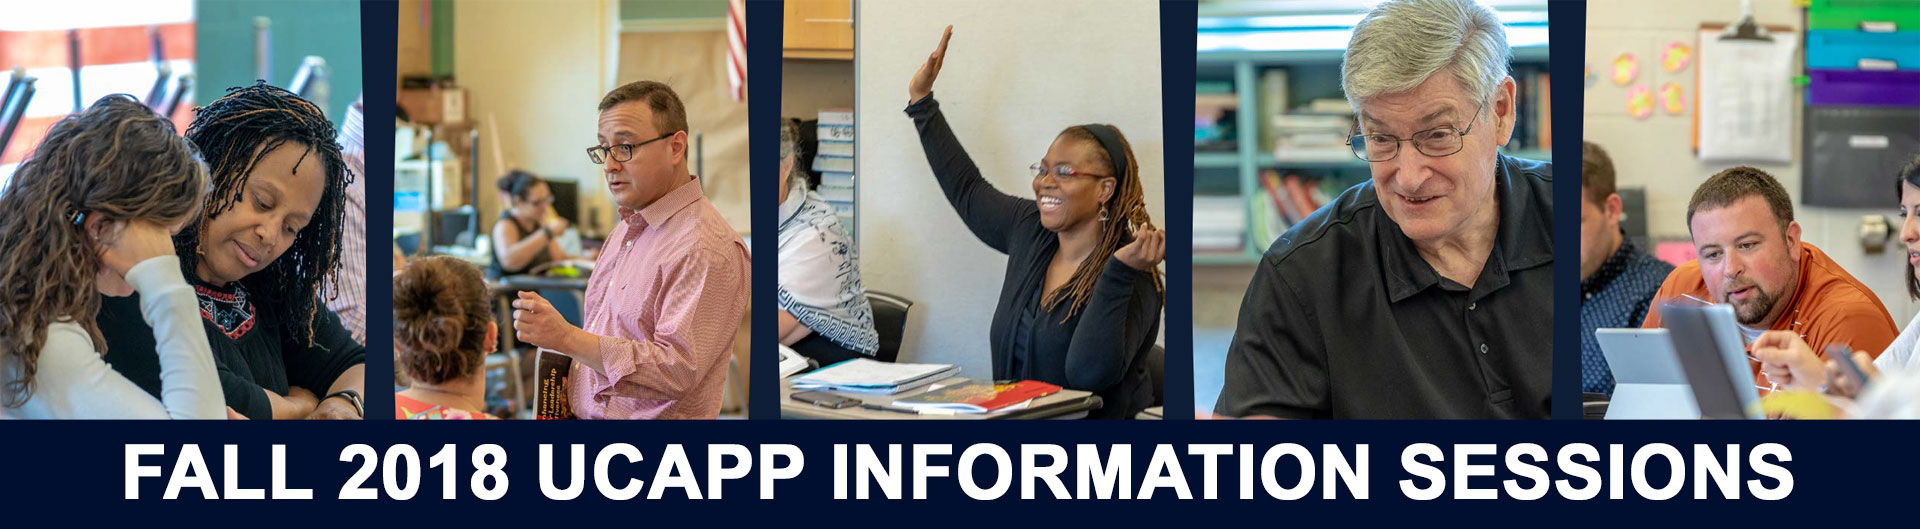 UCAPP Information Sessions, Fall 2018